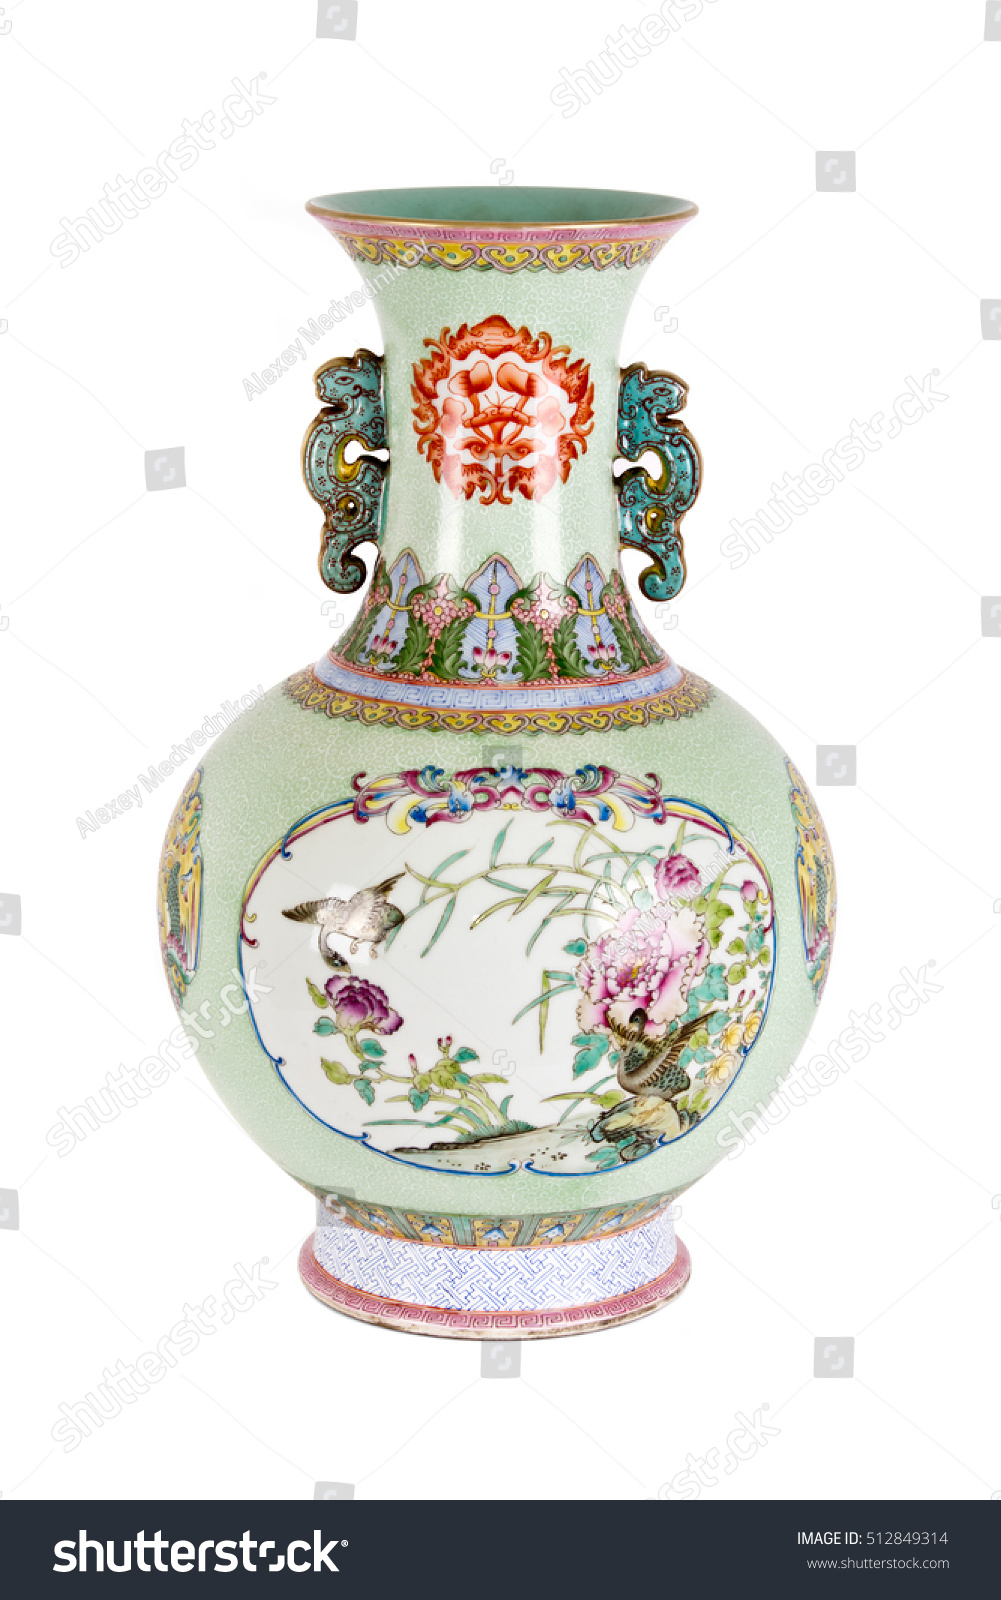 Vintage oriental vase on white background stock photo 512849314 vintage oriental vase on white background reviewsmspy